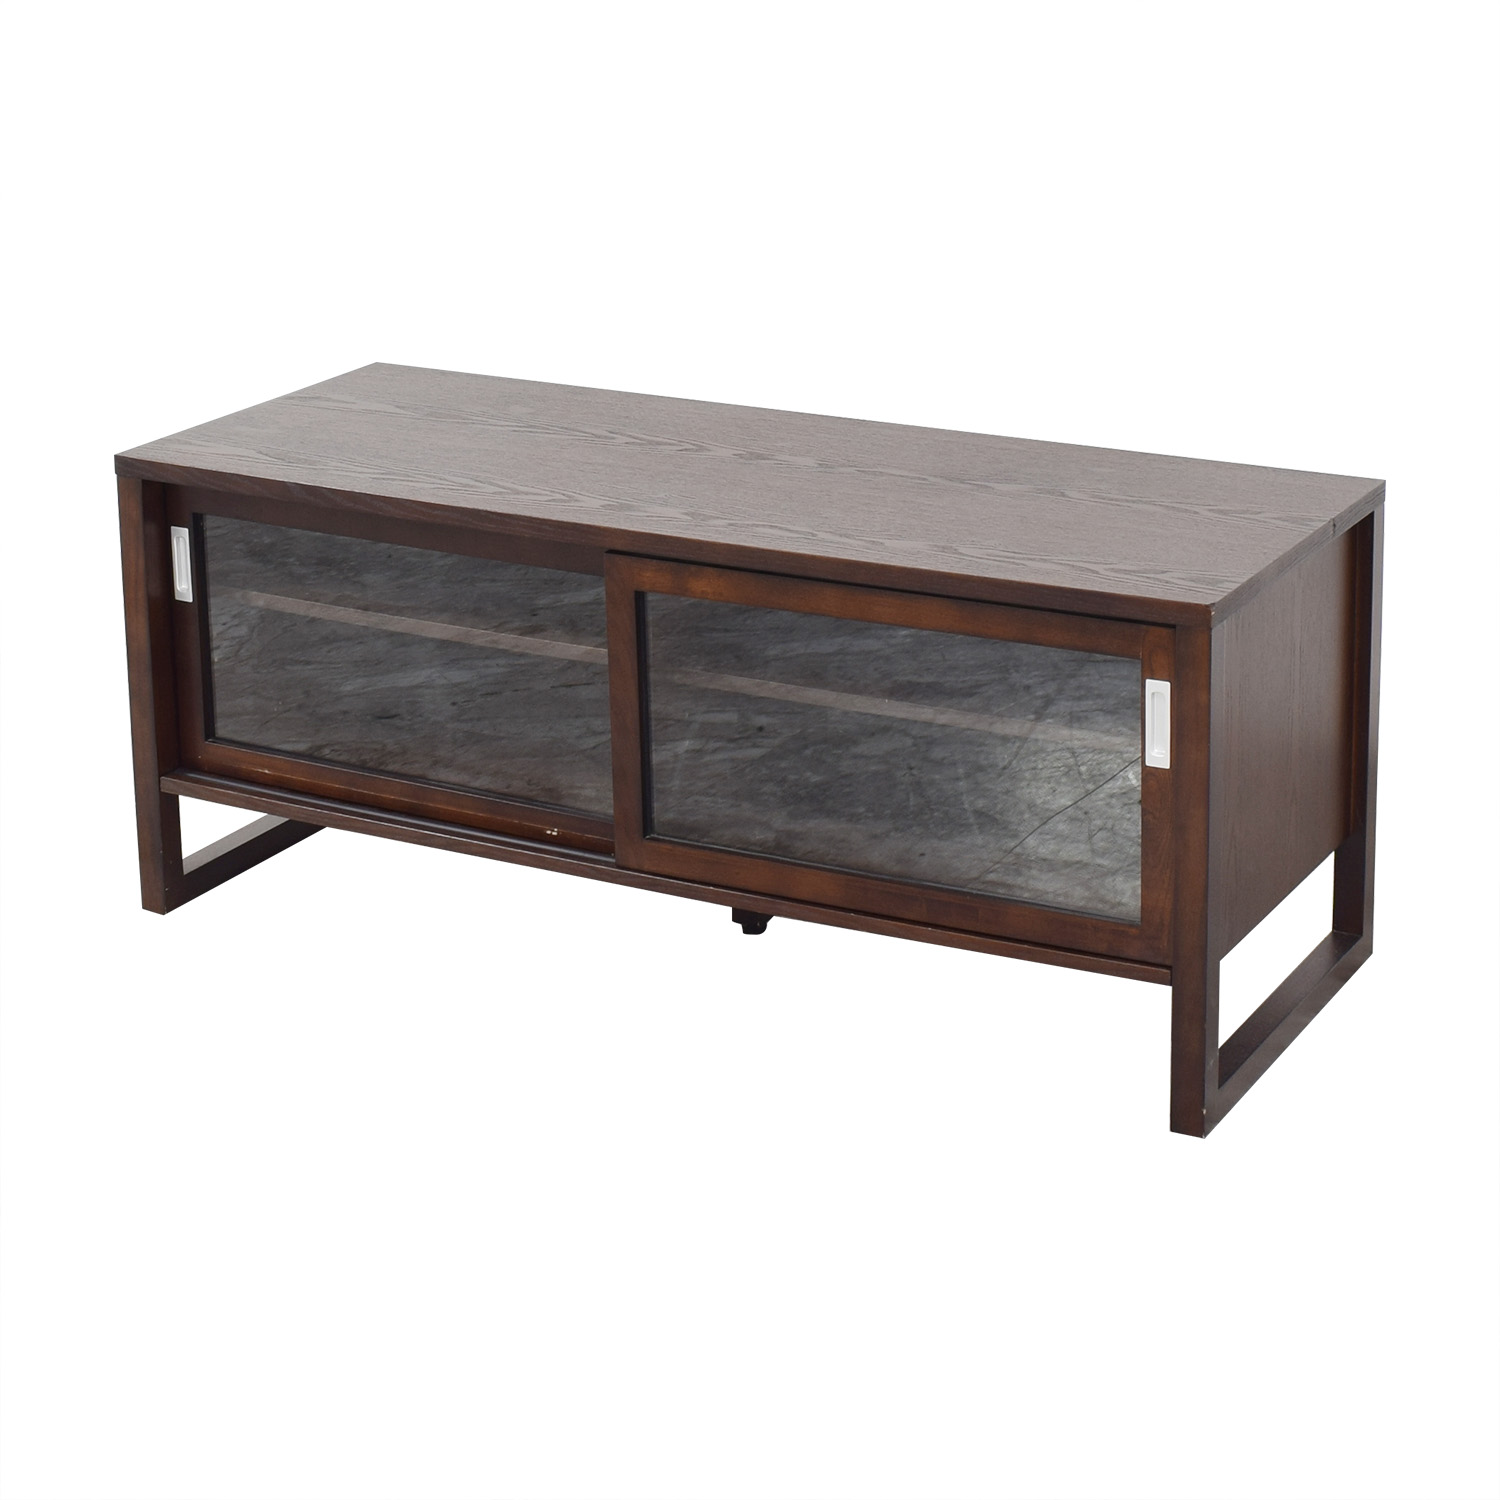 West Elm West Elm Media Console nyc